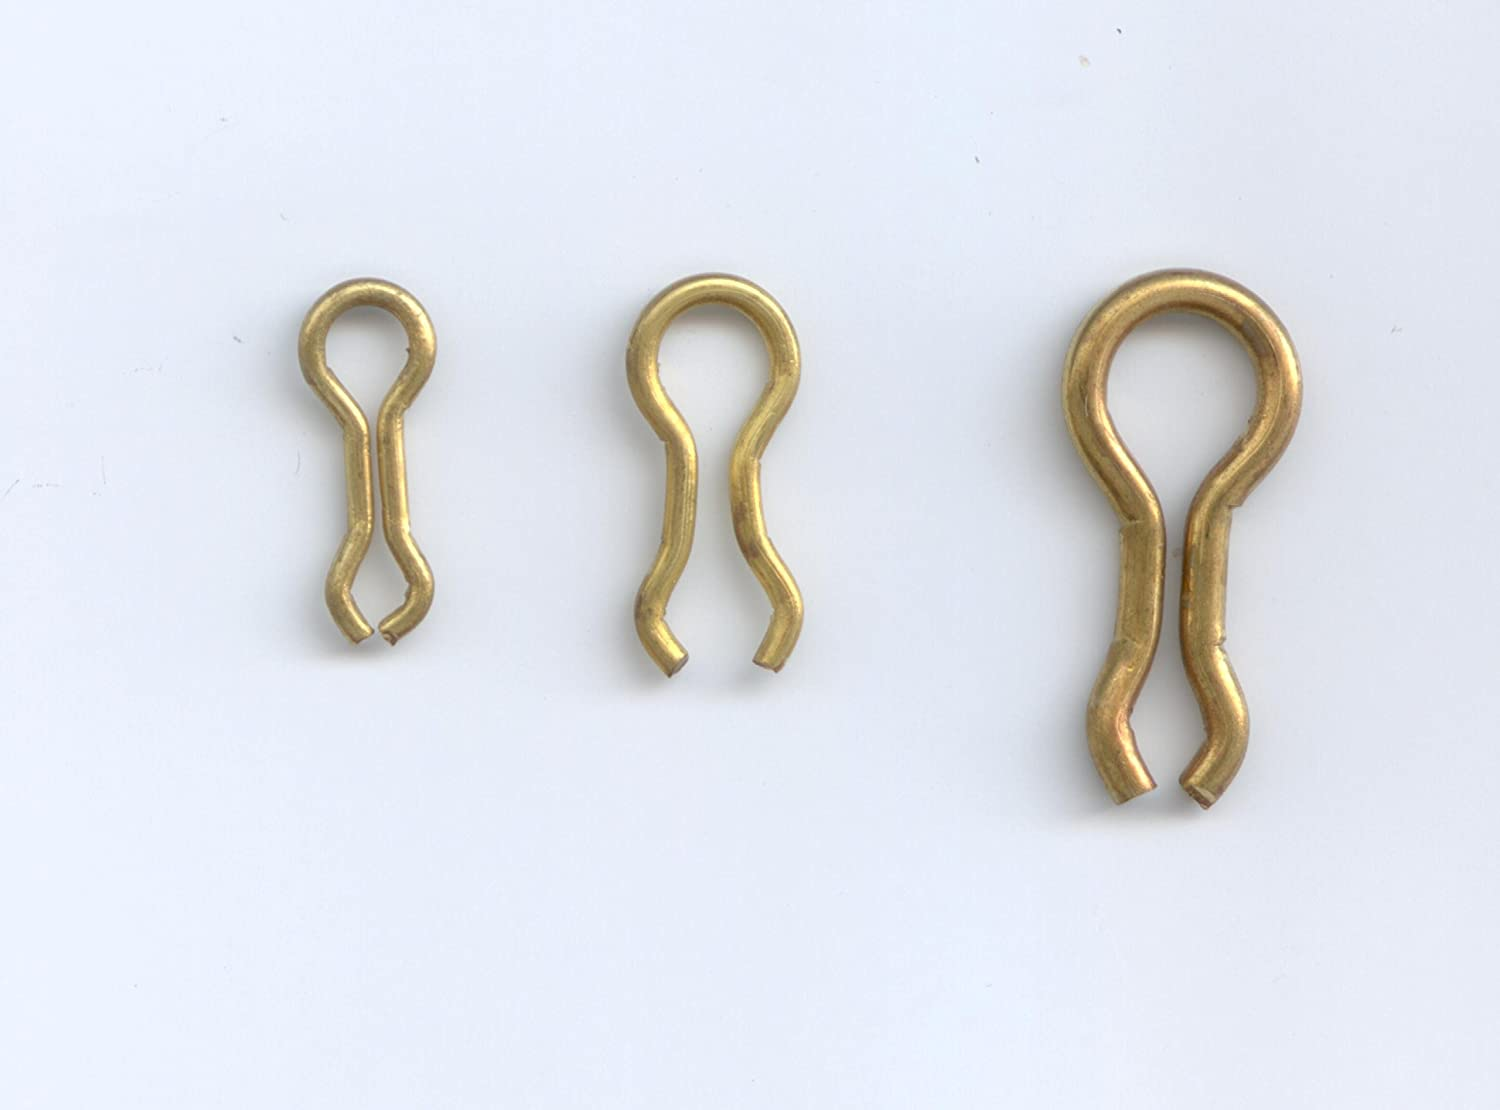 #3 BRASS SINKER WIRE EYE FOR THE DO-IT MOLDS 100 PER PACK BY S & J's TACKLE BOX 81SfOWZoEzL